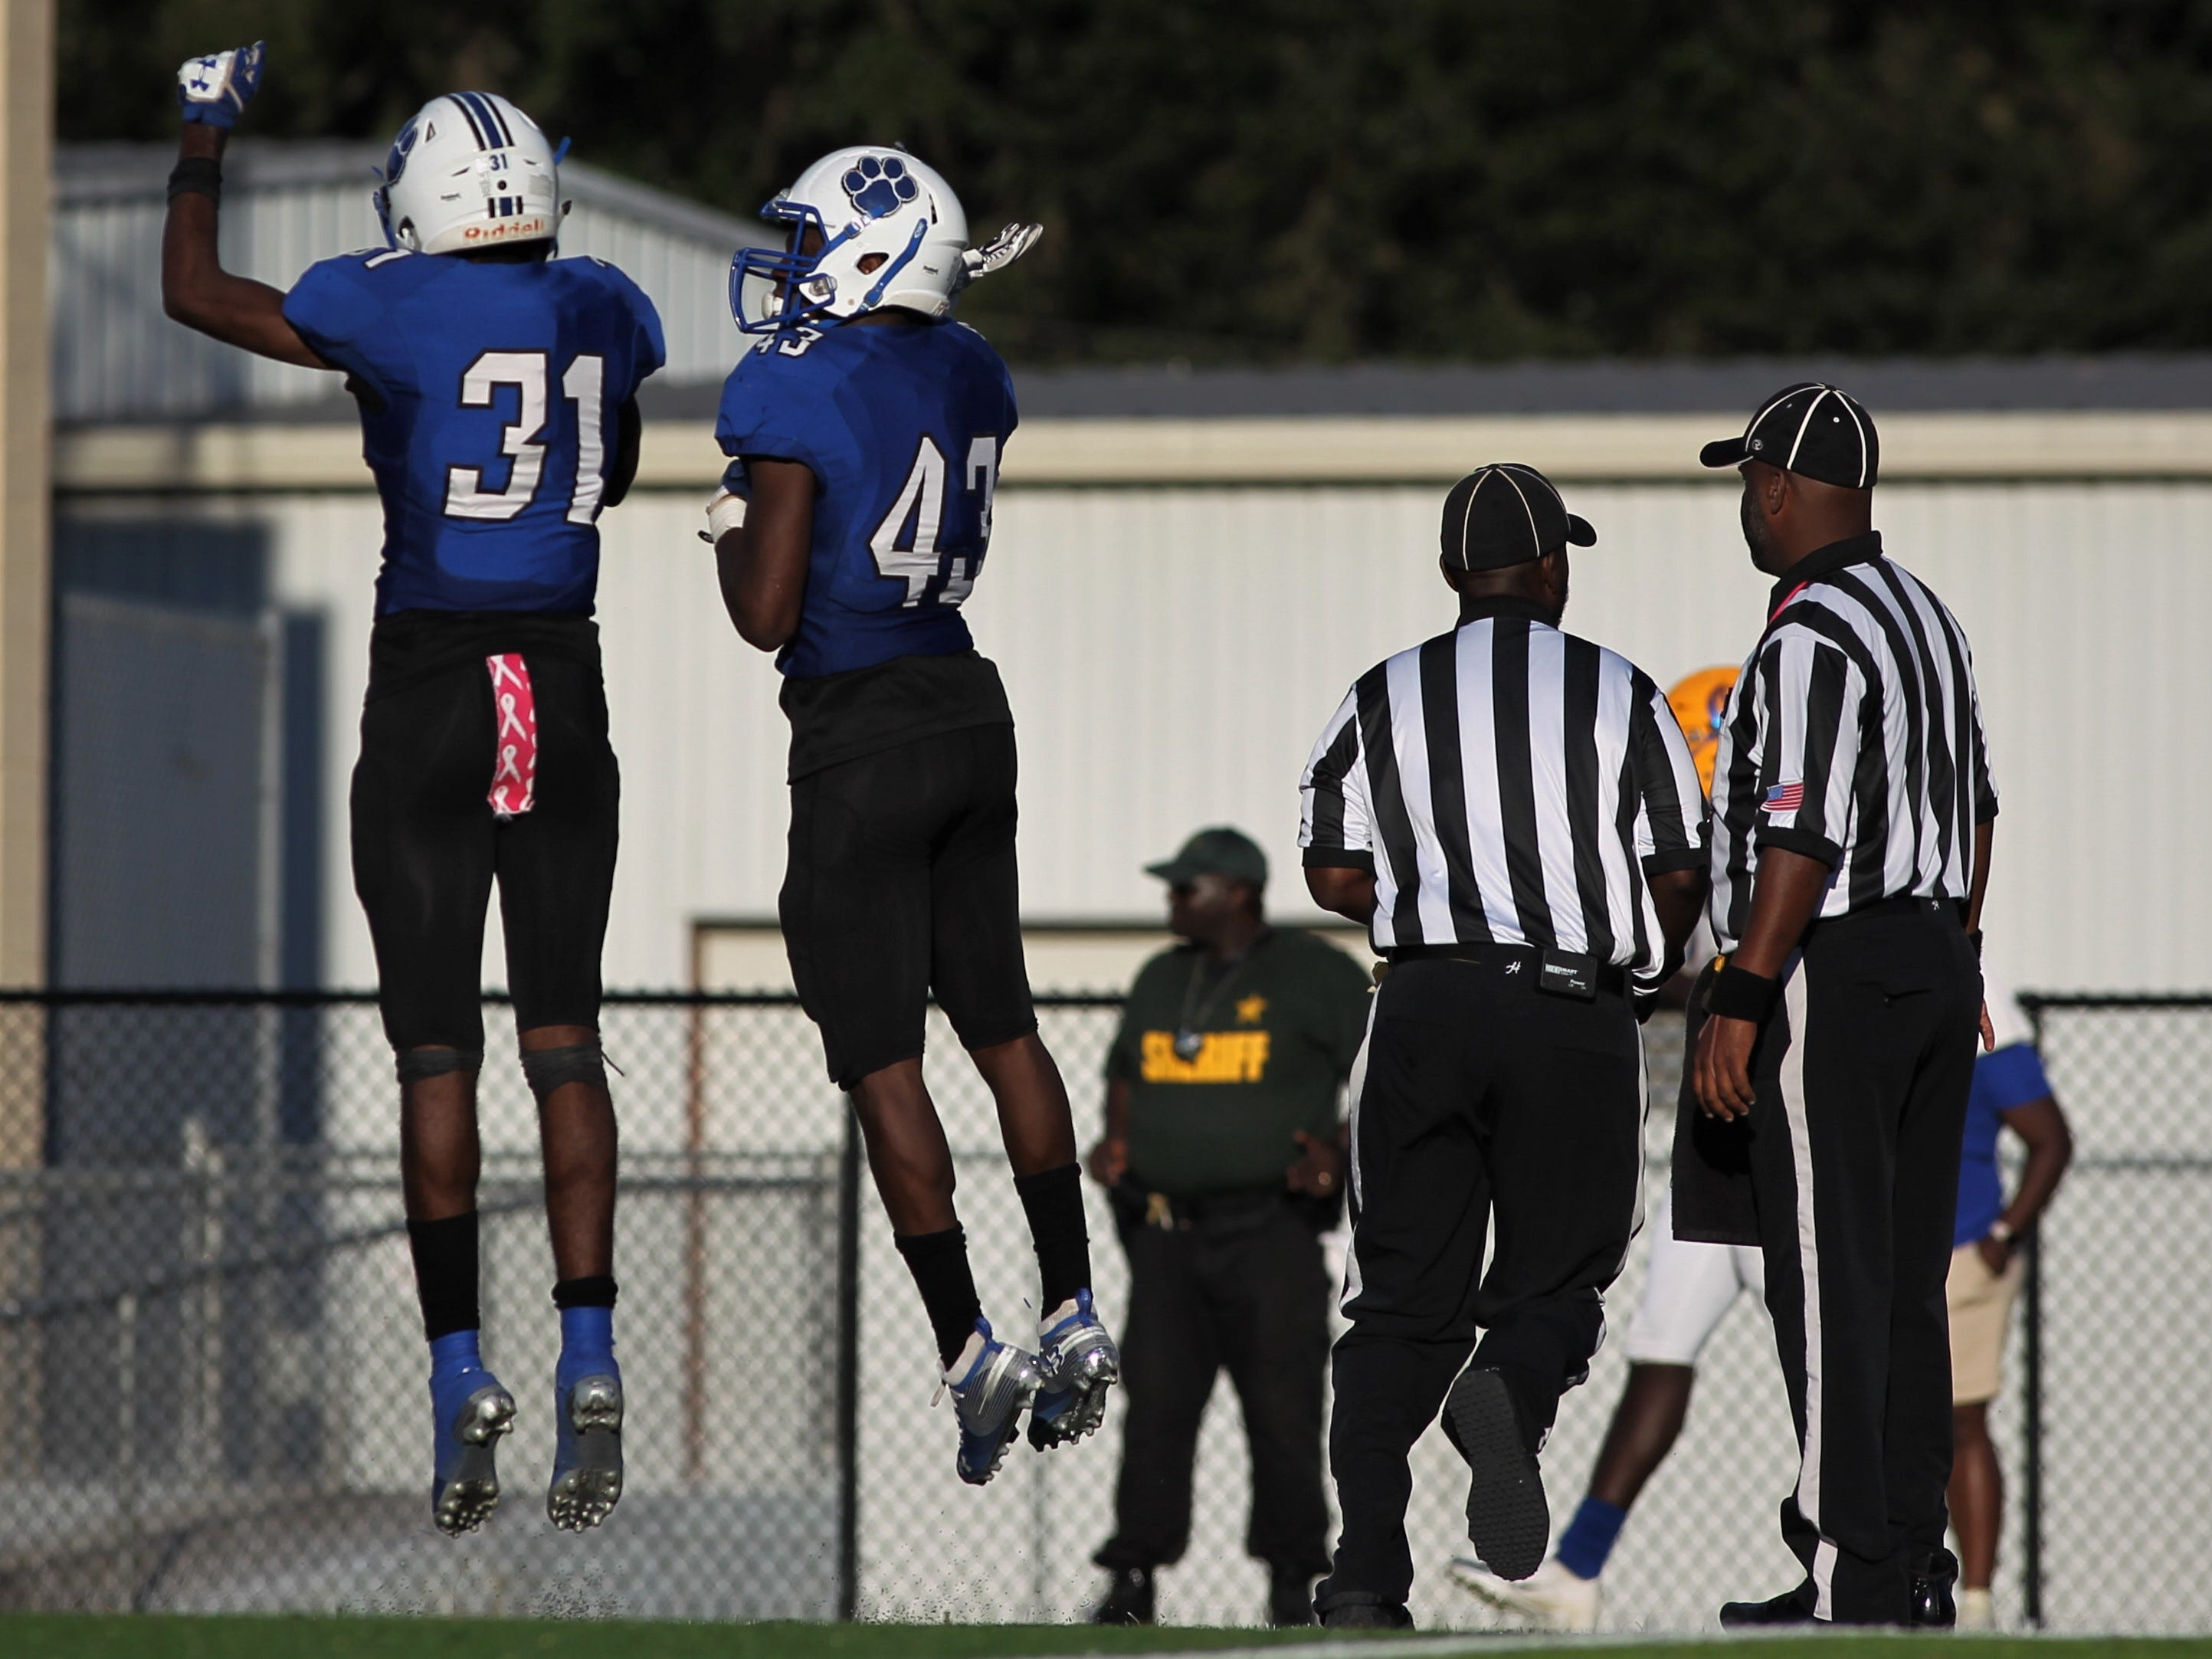 Godby's De'shawn Rucker (43) celebrates an interception with teammates during Saturday's game against Rickards.